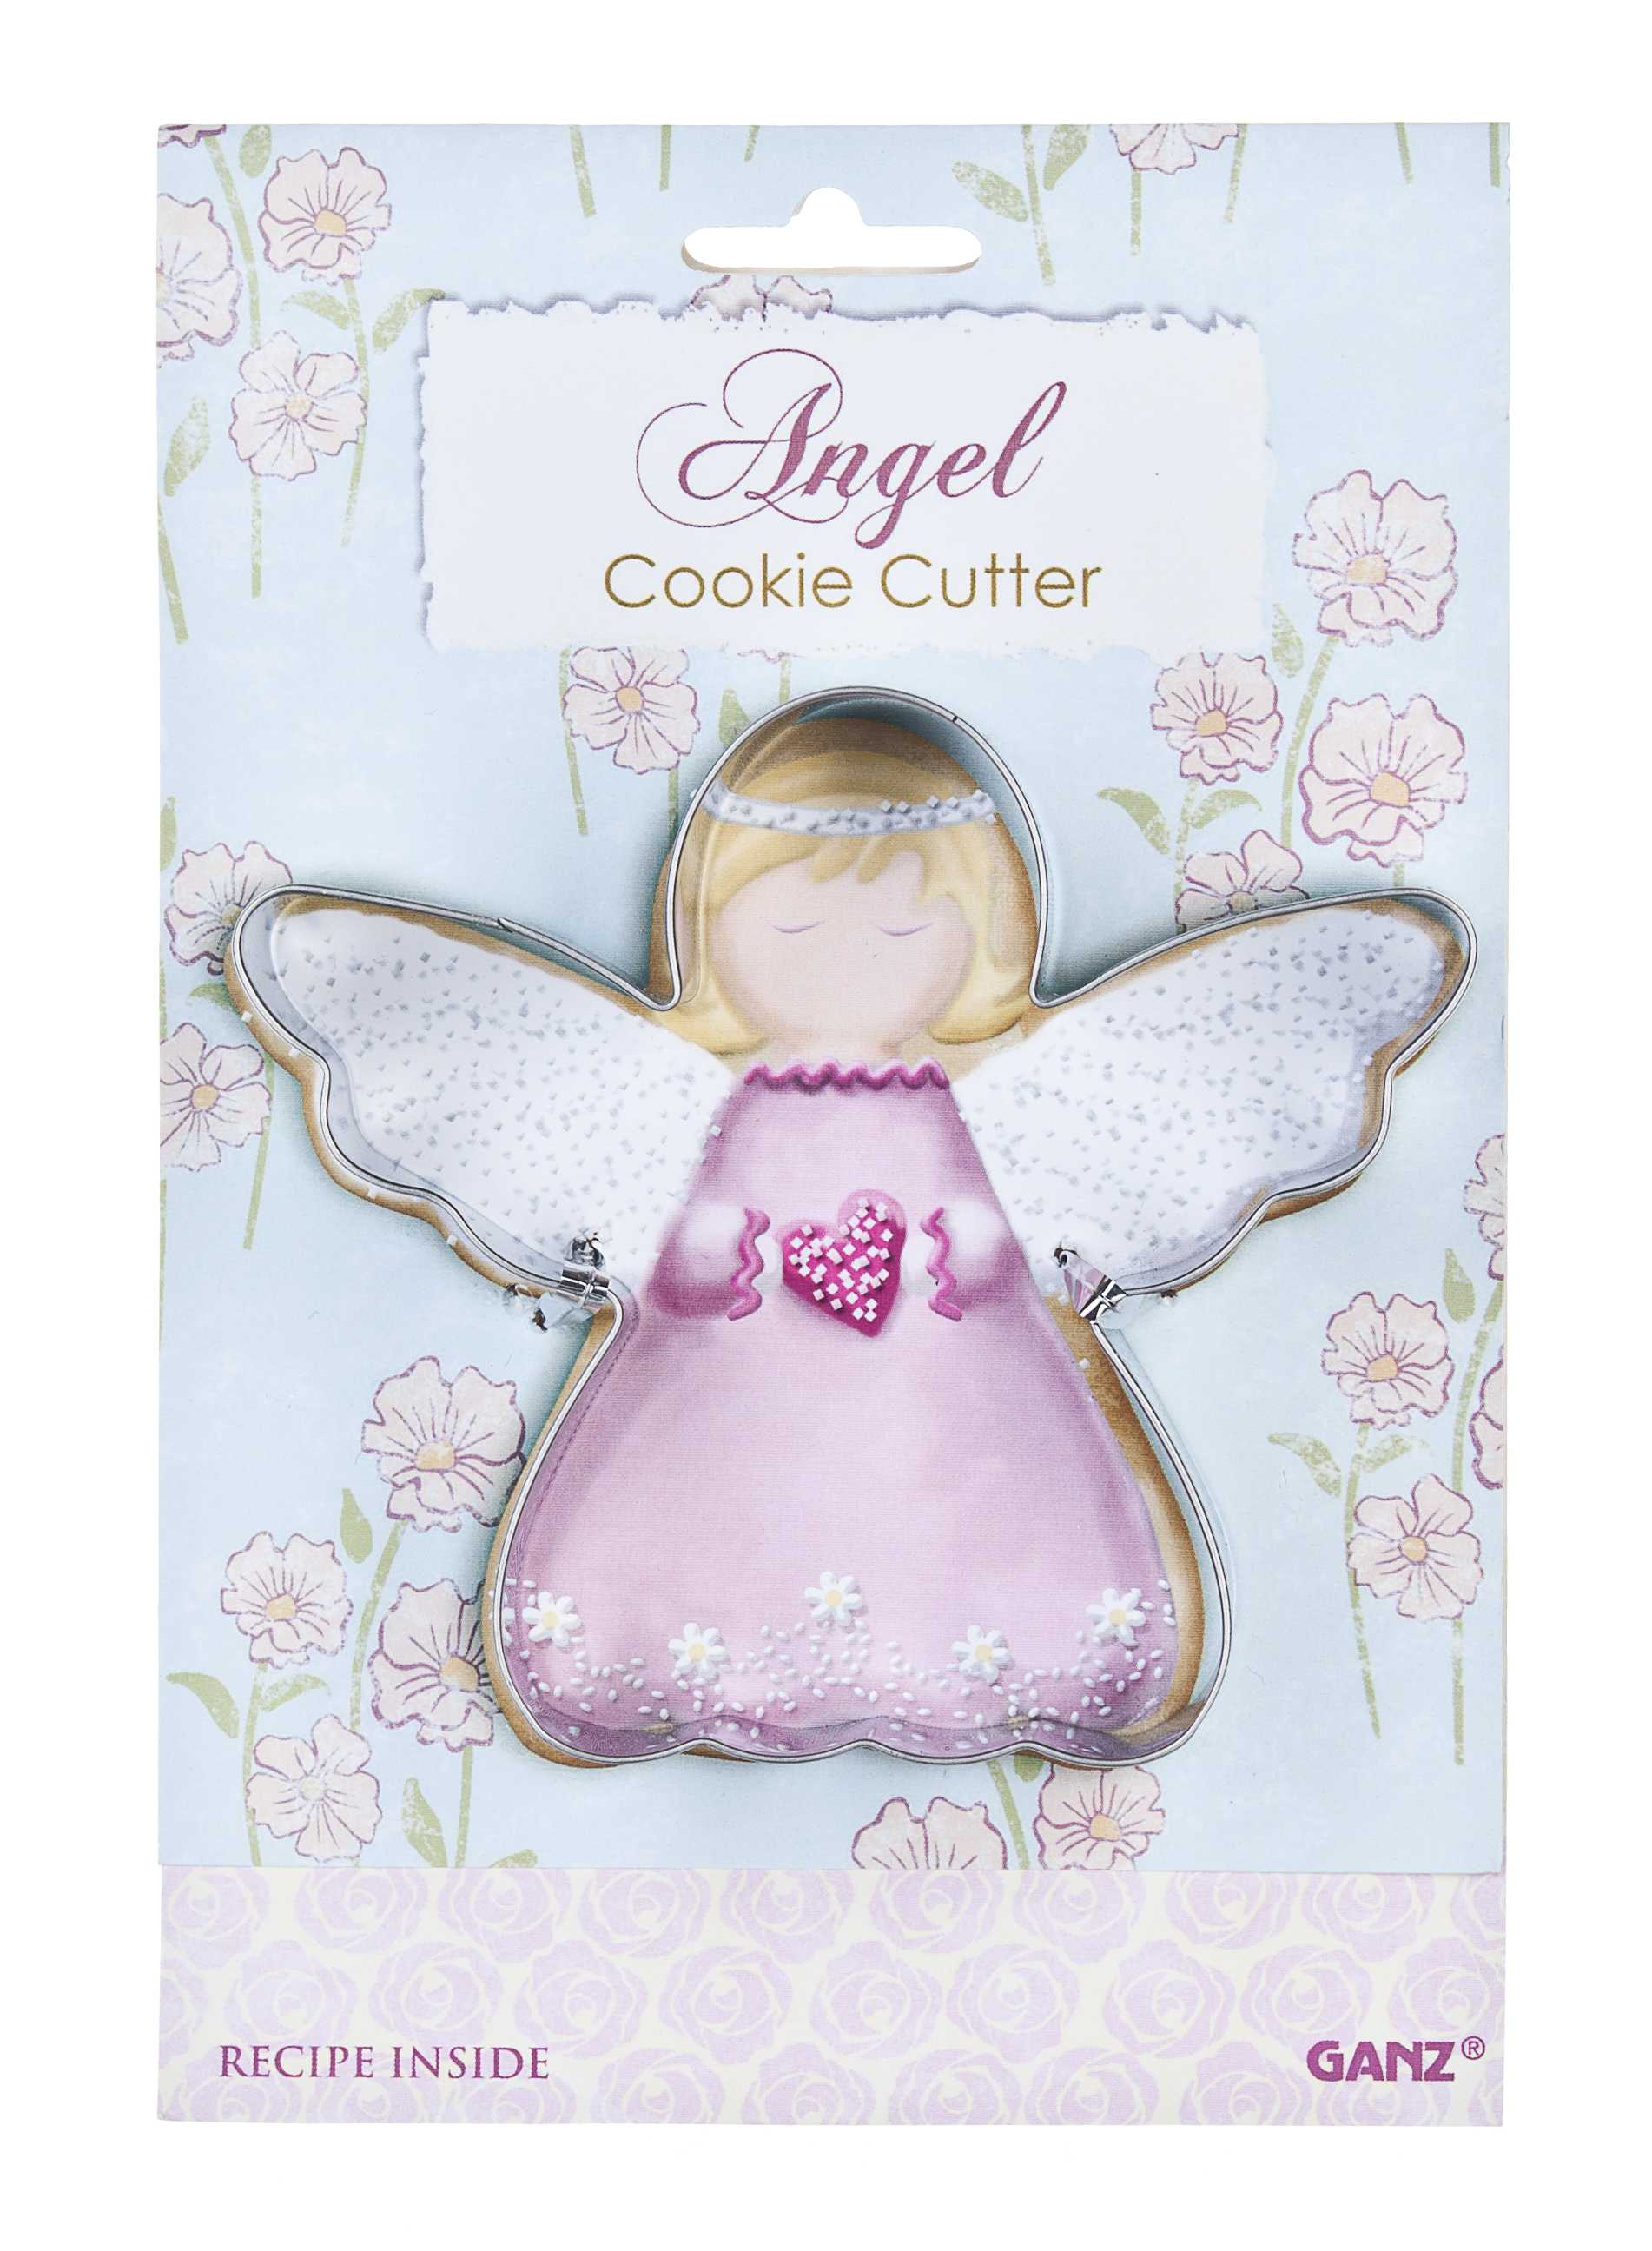 Angel Cookie Cutter Ganz Holiday Cookie Cutter (Large) by